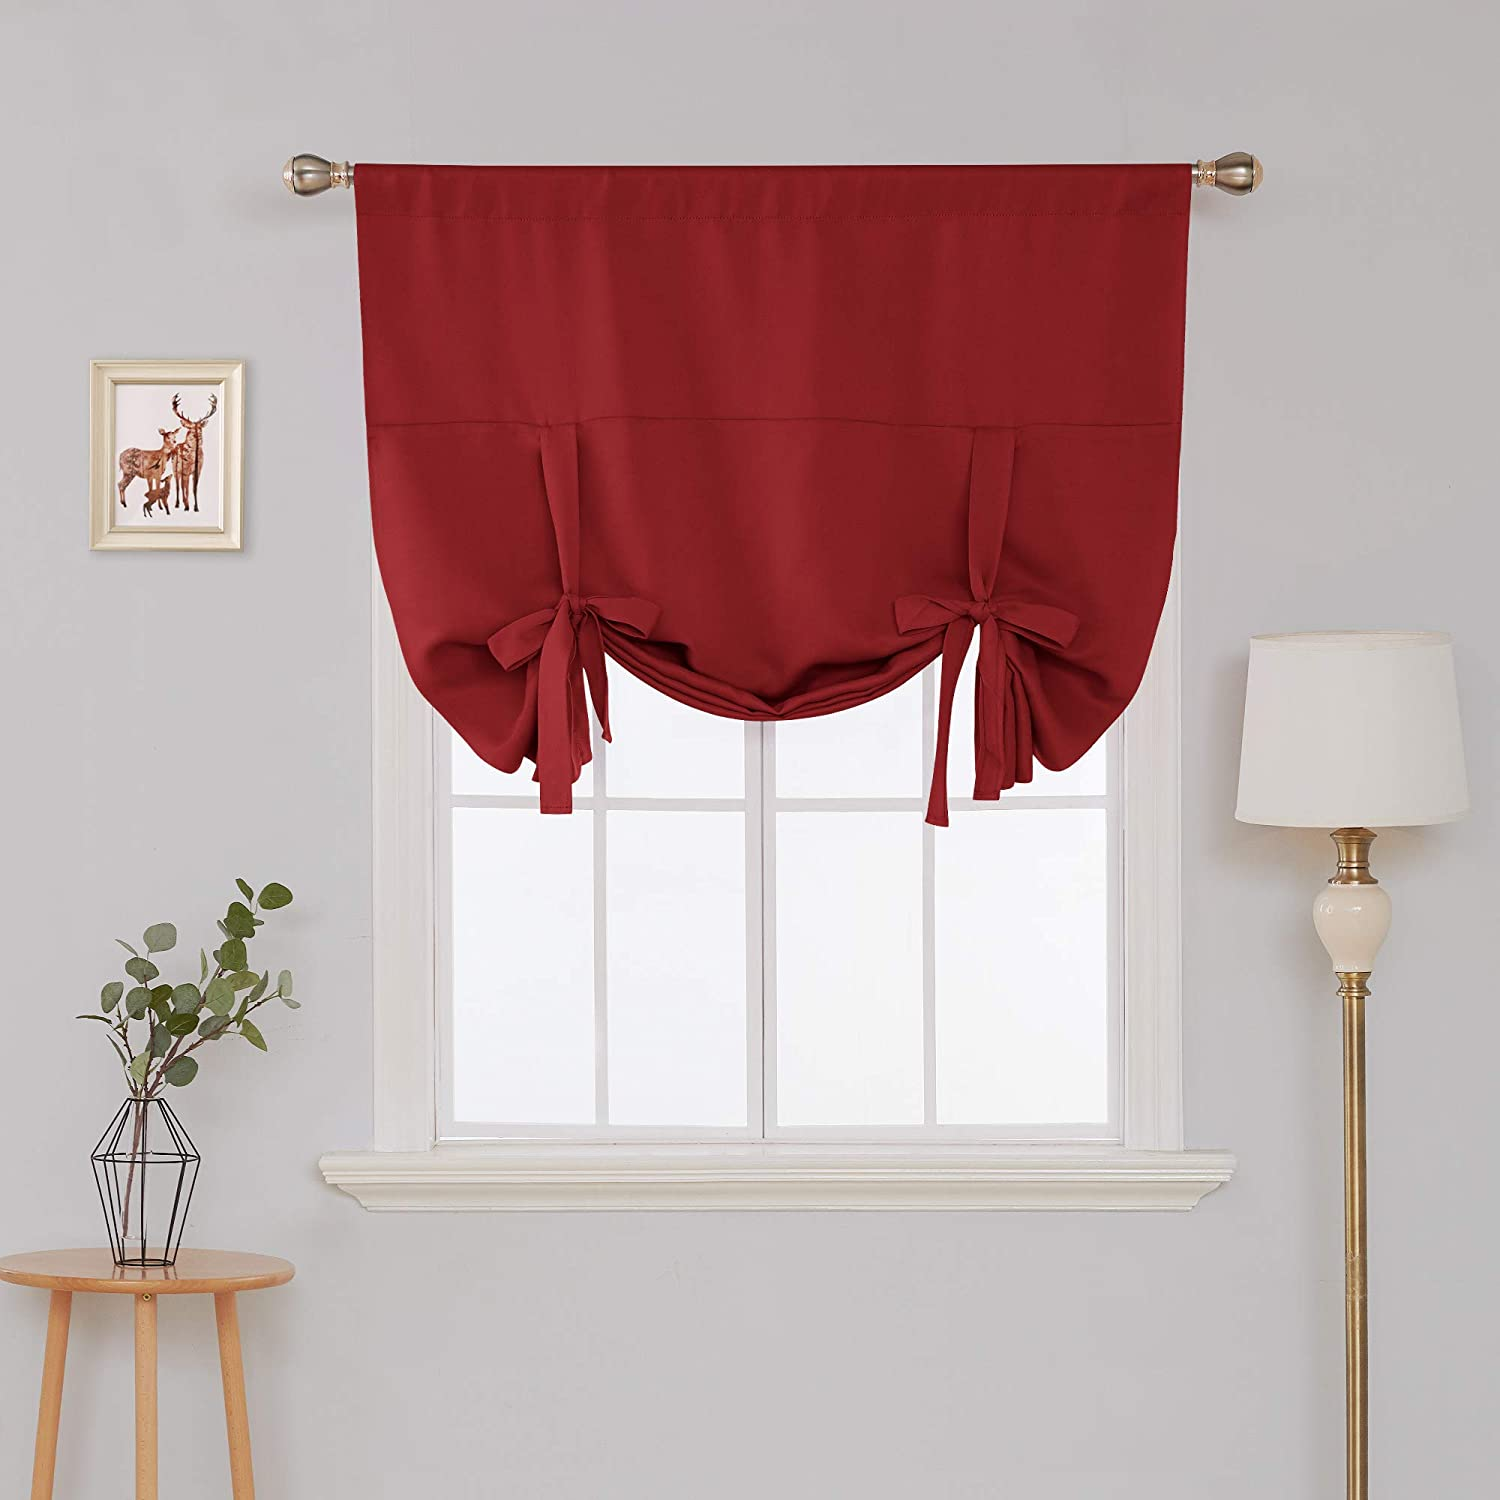 Deconovo Christmas Curtains Rod Pocket Blackout Panel Blackout Small Window Curtain for Bedroom True Red 46W x 63L 1 Panel